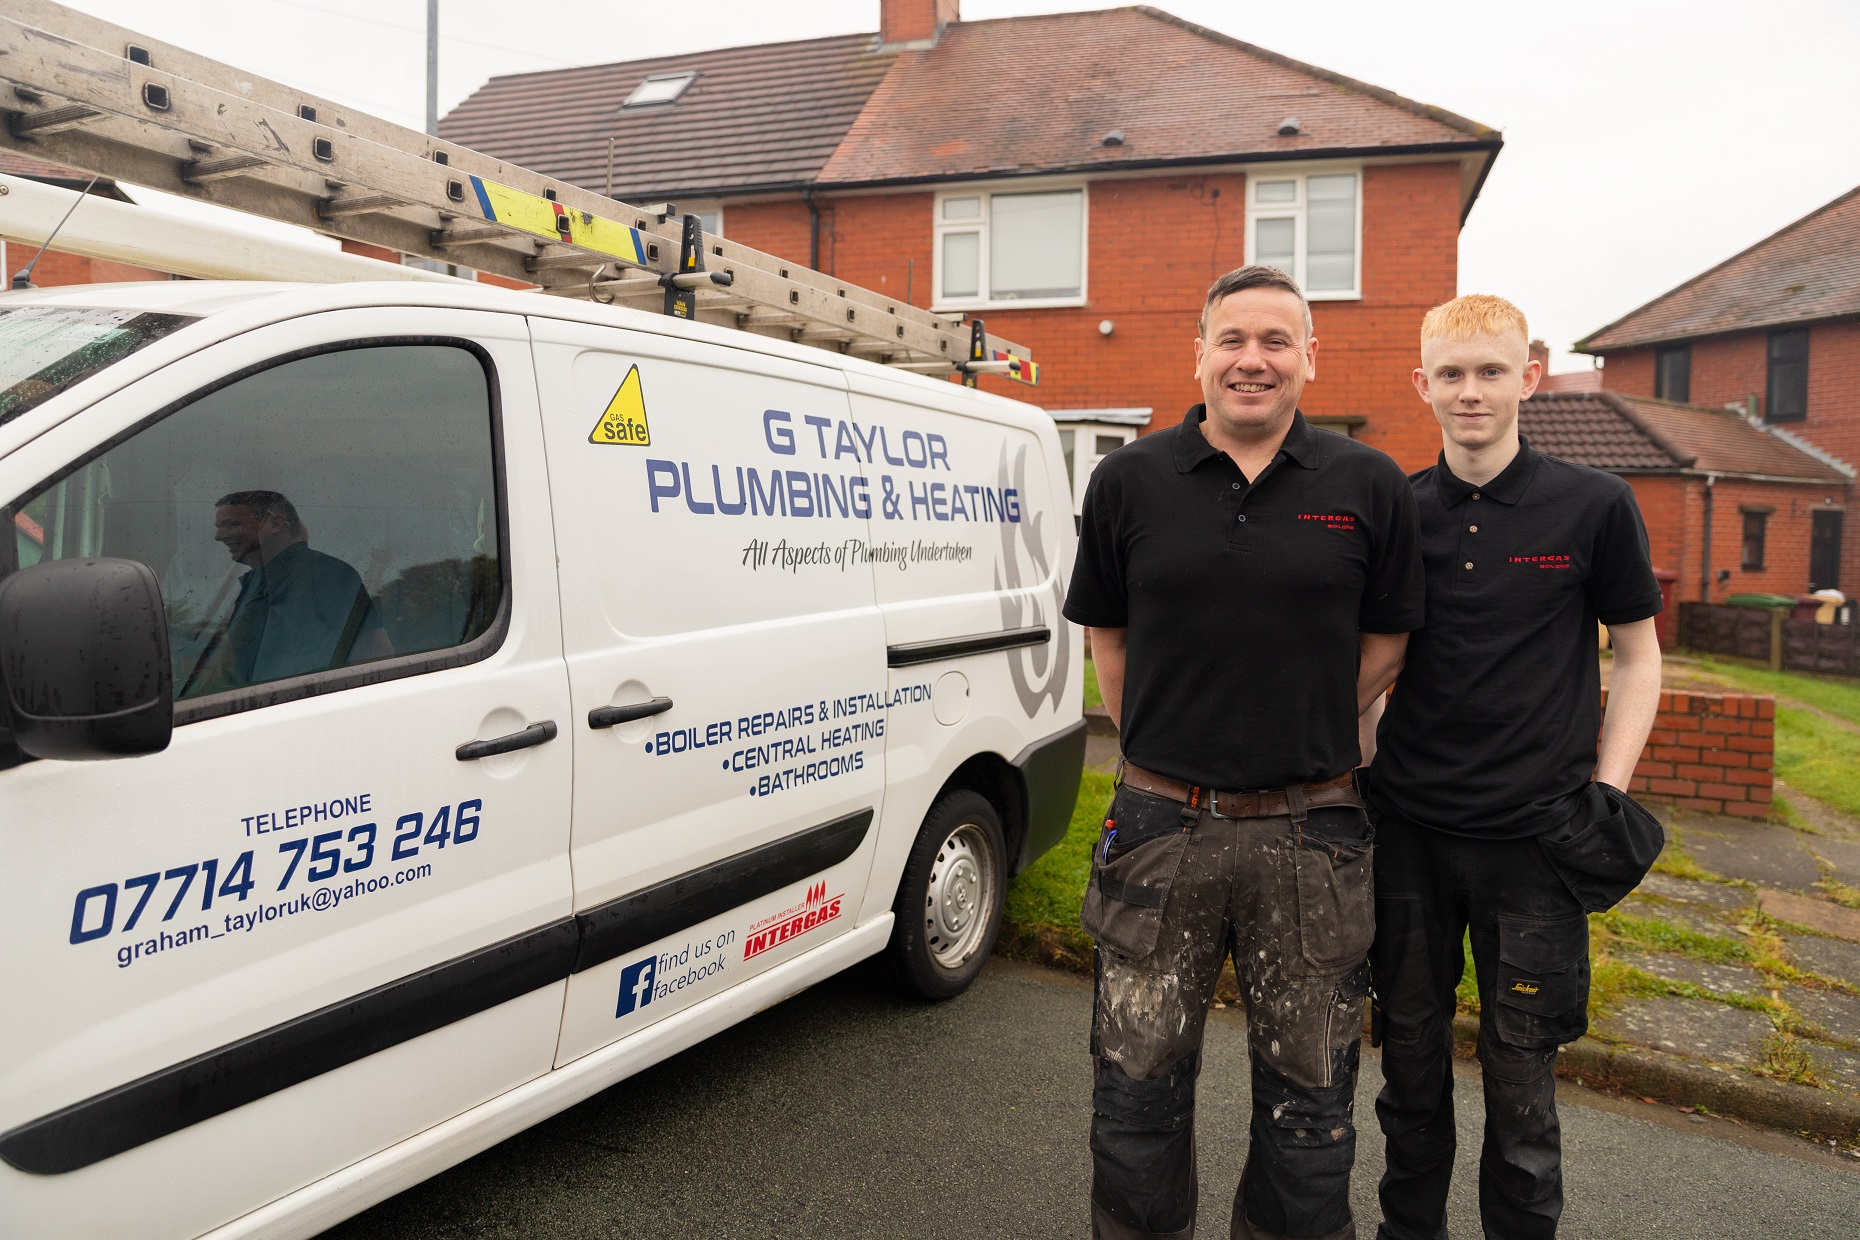 Graham taylor with apprentice ewan g taylor plumbing and heating